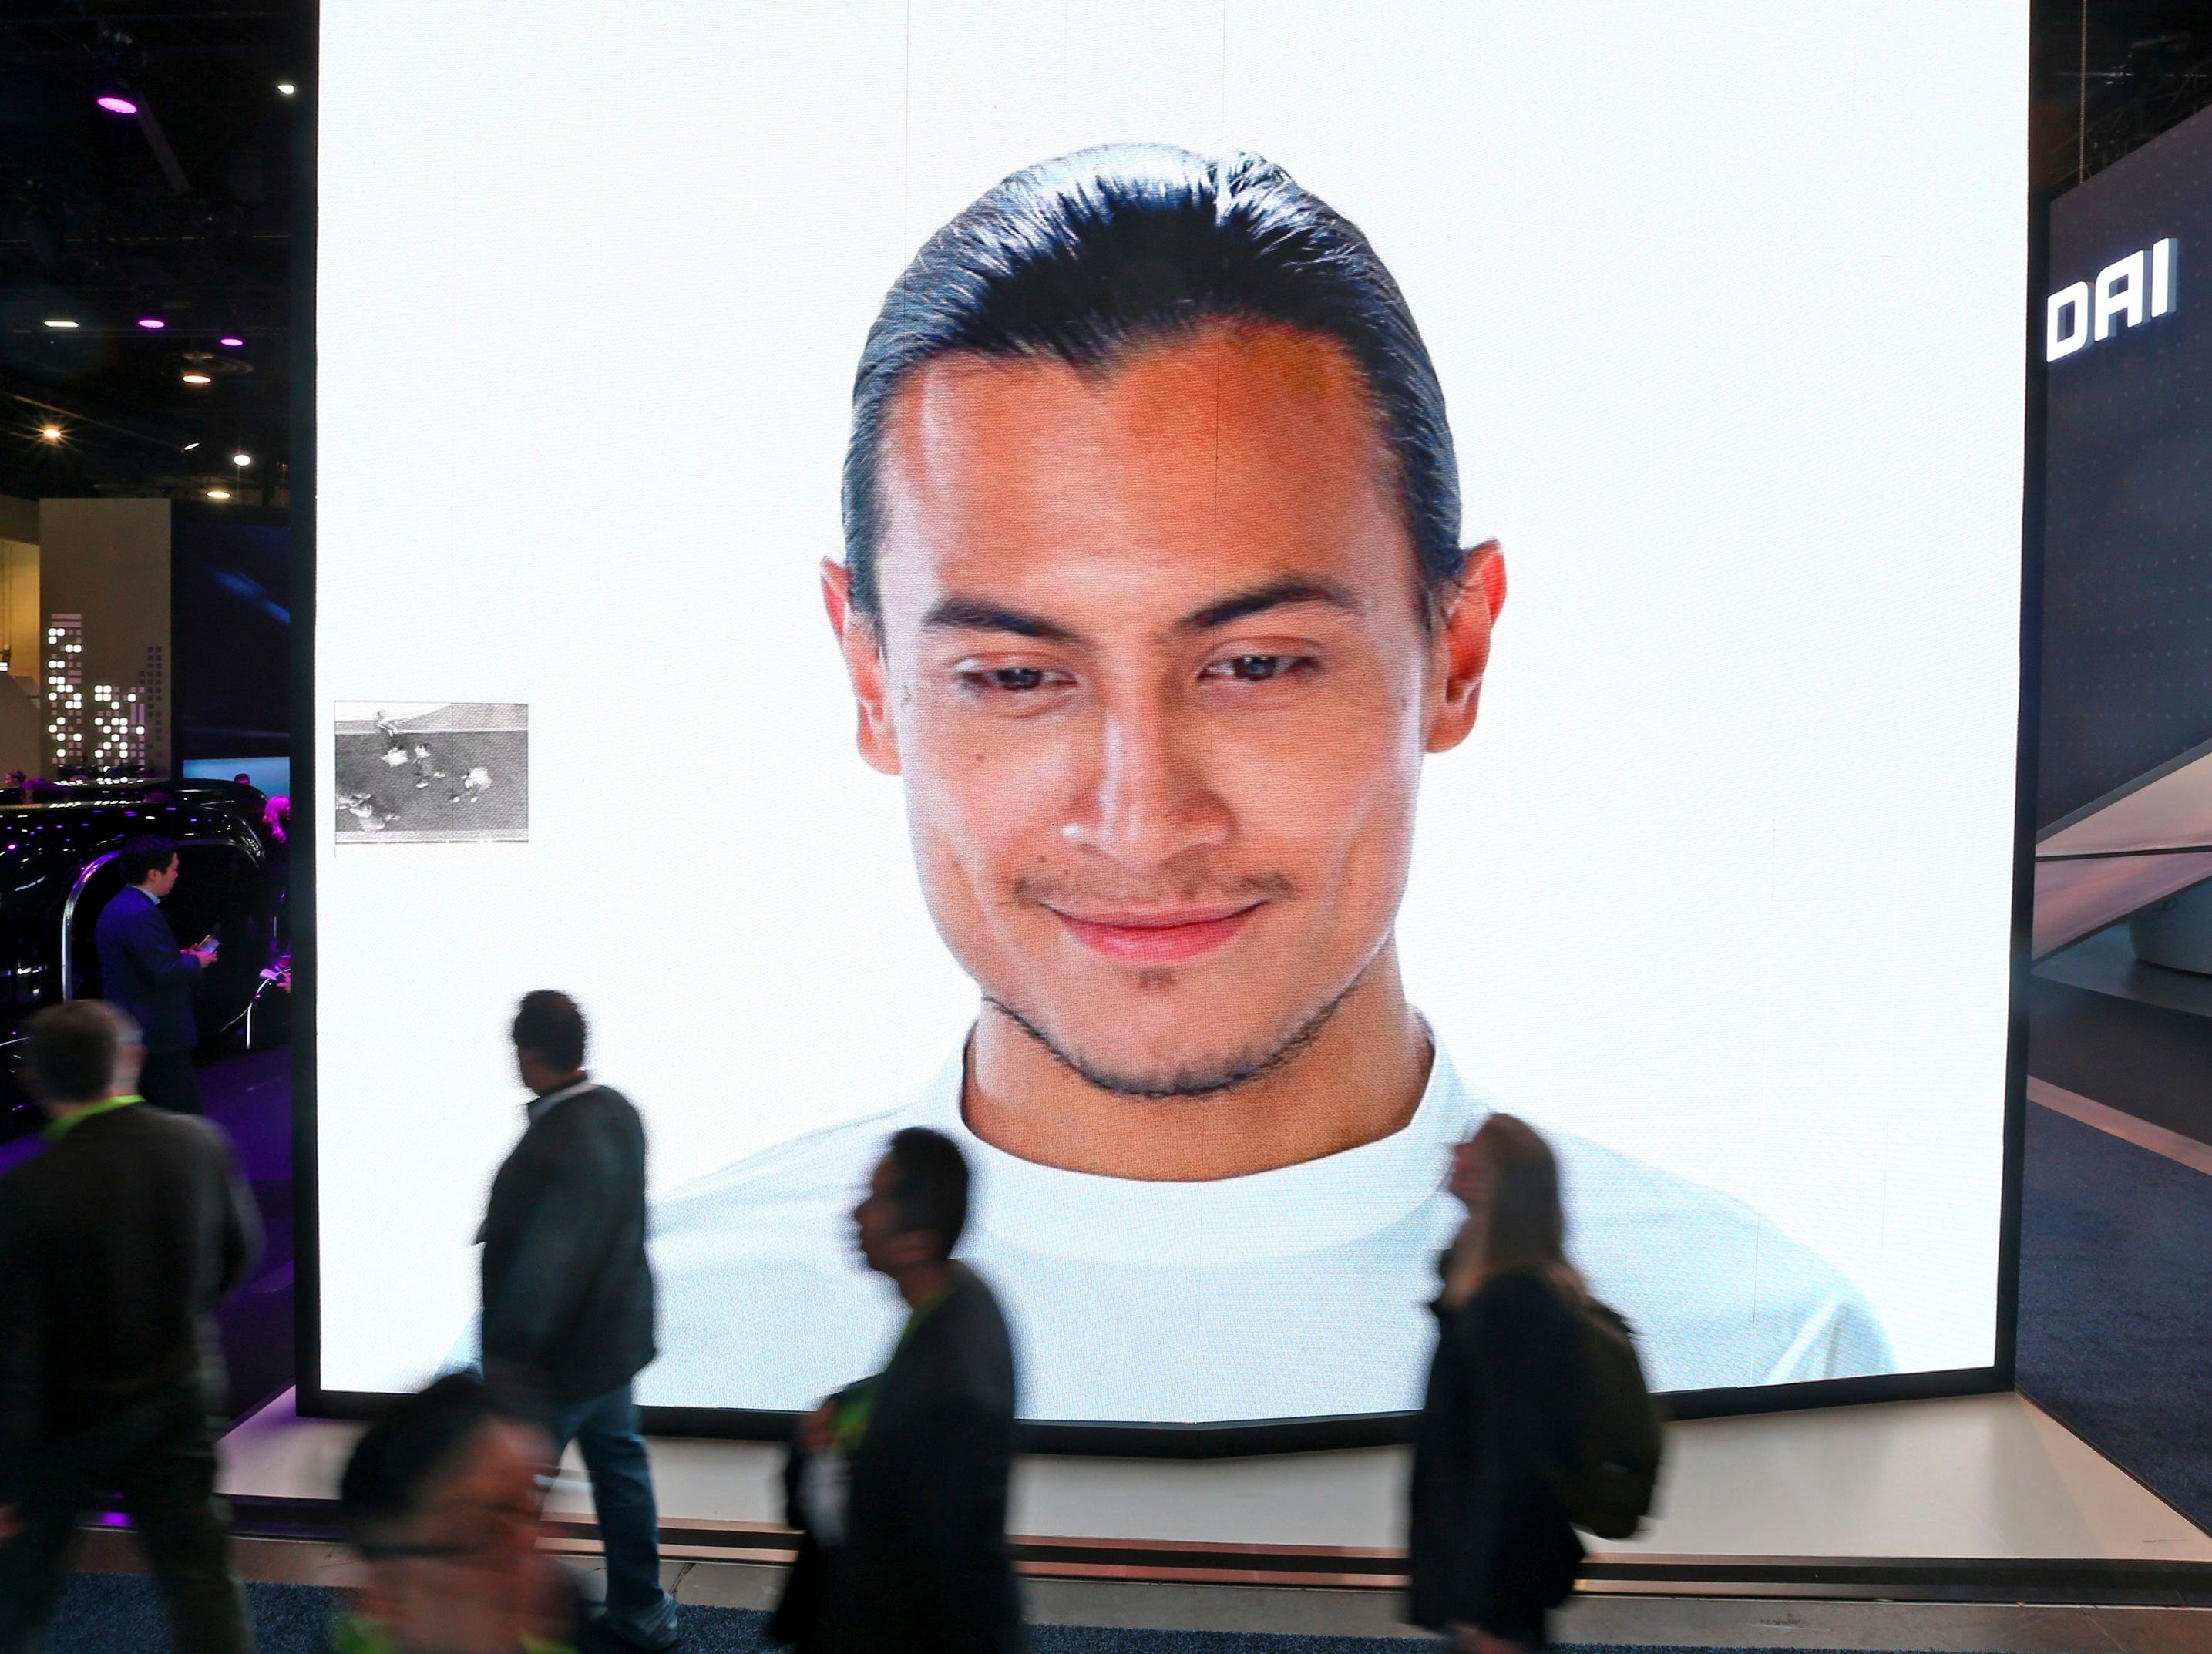 A giant KIA video screen advertises facial recognition in prototype vehicles as patrons walk past at CES International on Wednesday, Jan. 9, 2019, in Las Vegas.